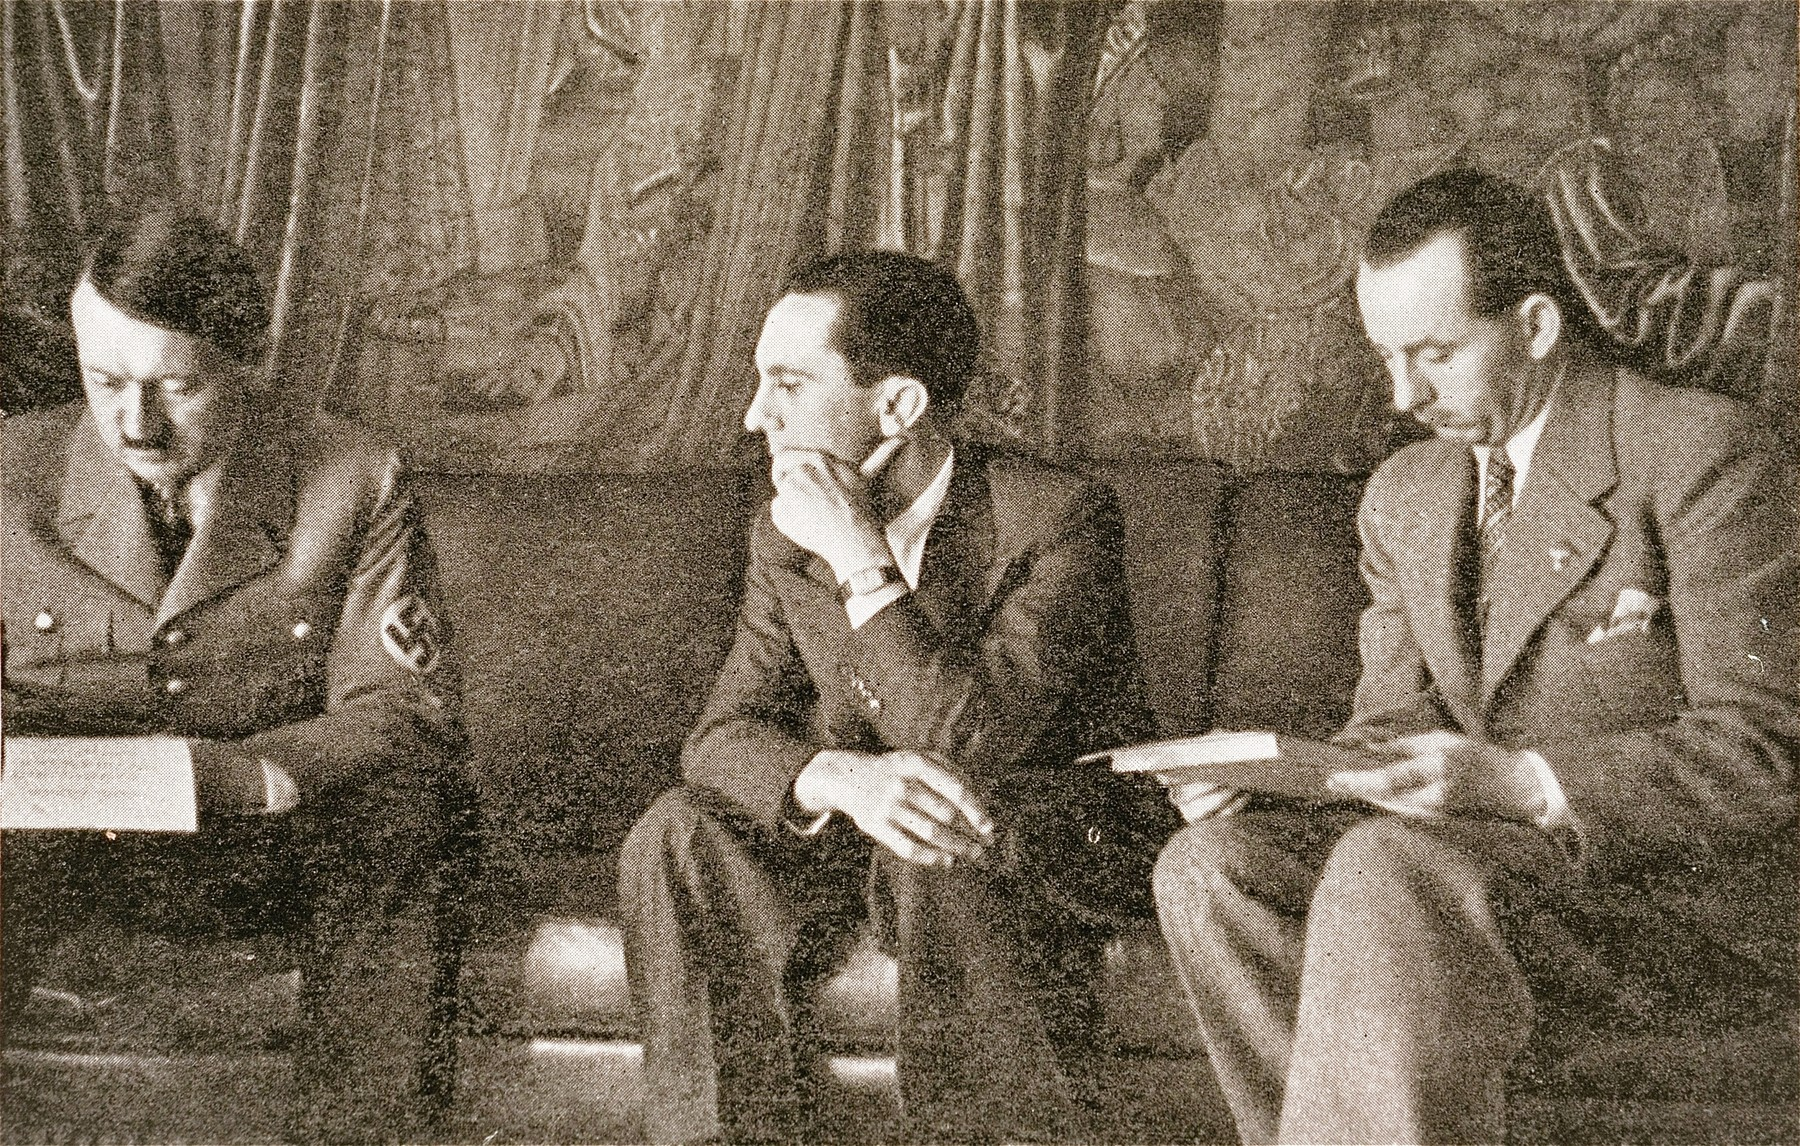 Minister of Propaganda Joseph Goebbels waits while Adolf Hitler reviews a document in the chancellery.